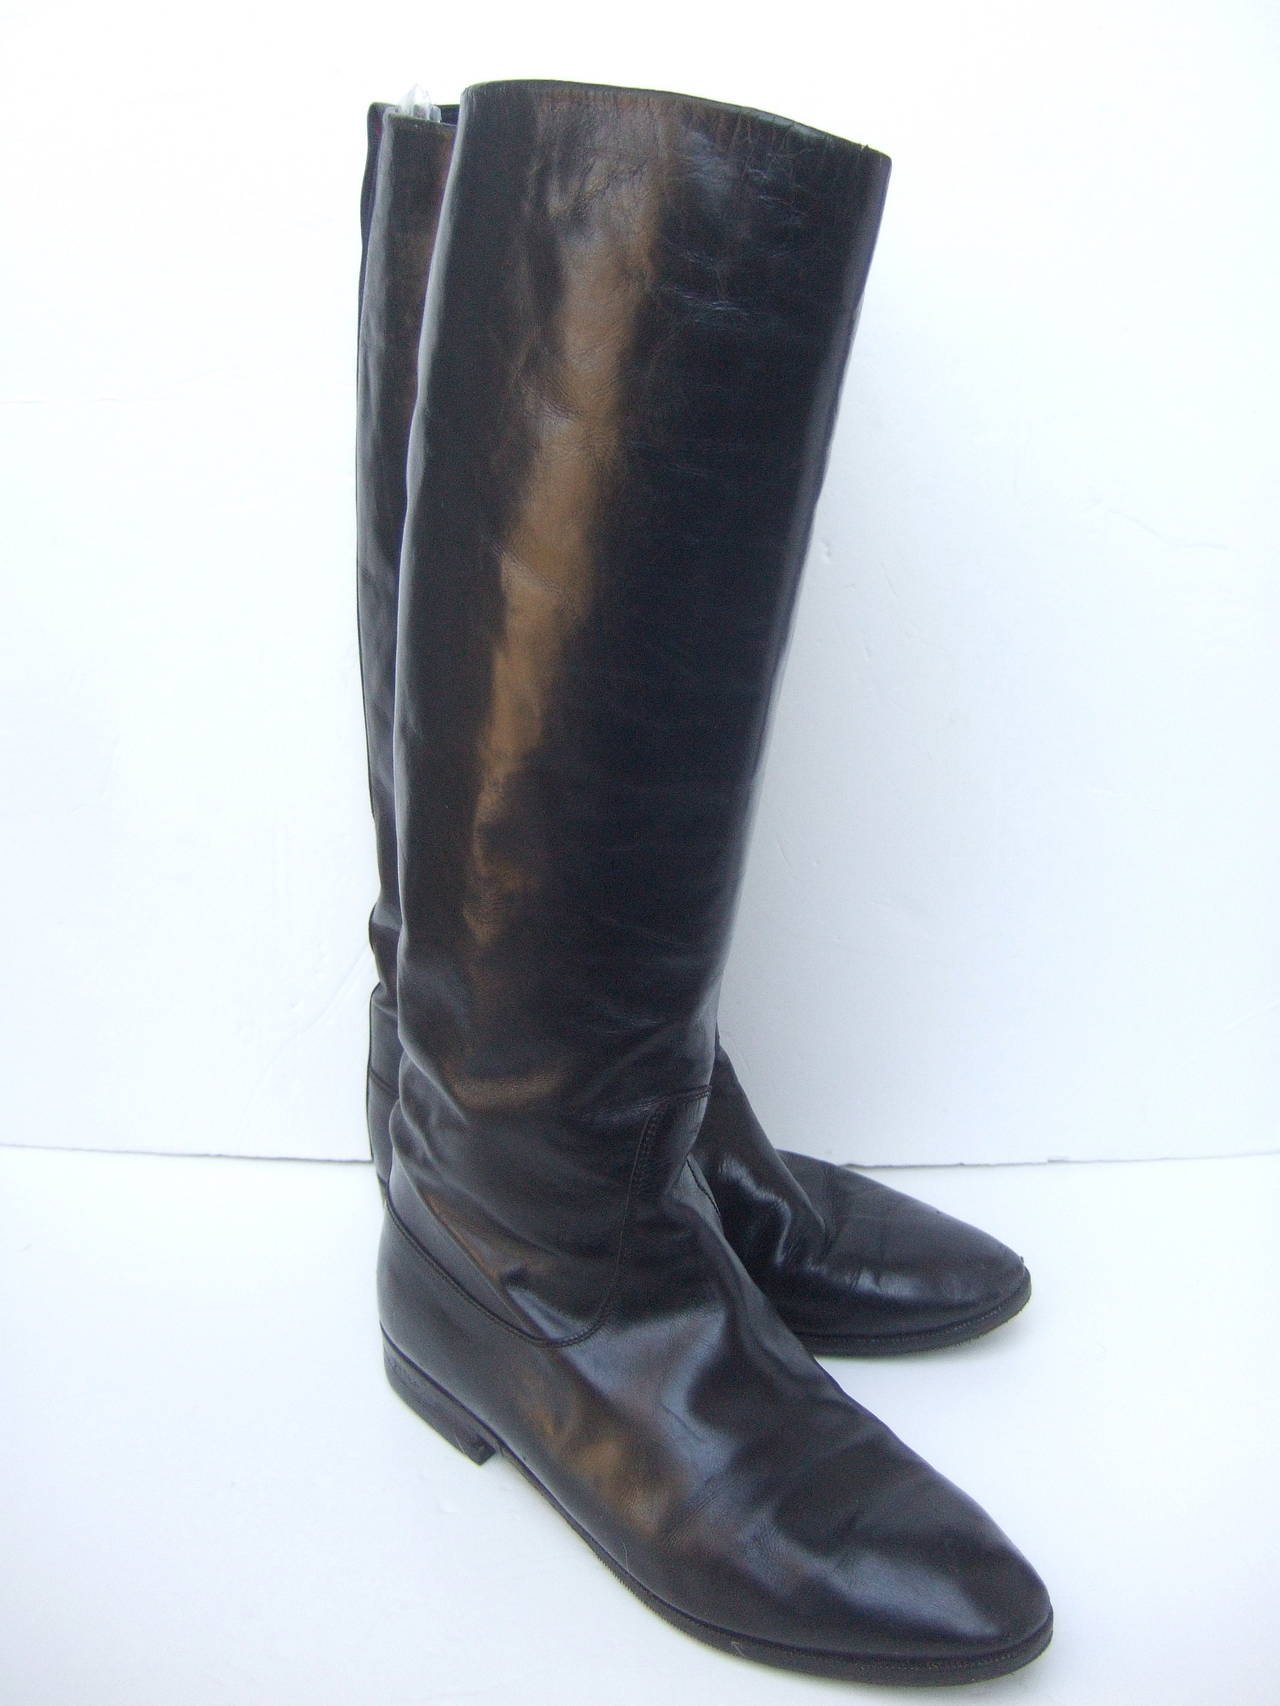 Gucci Black Leather Vintage Riding Boots c 1980s Size 38.5 7